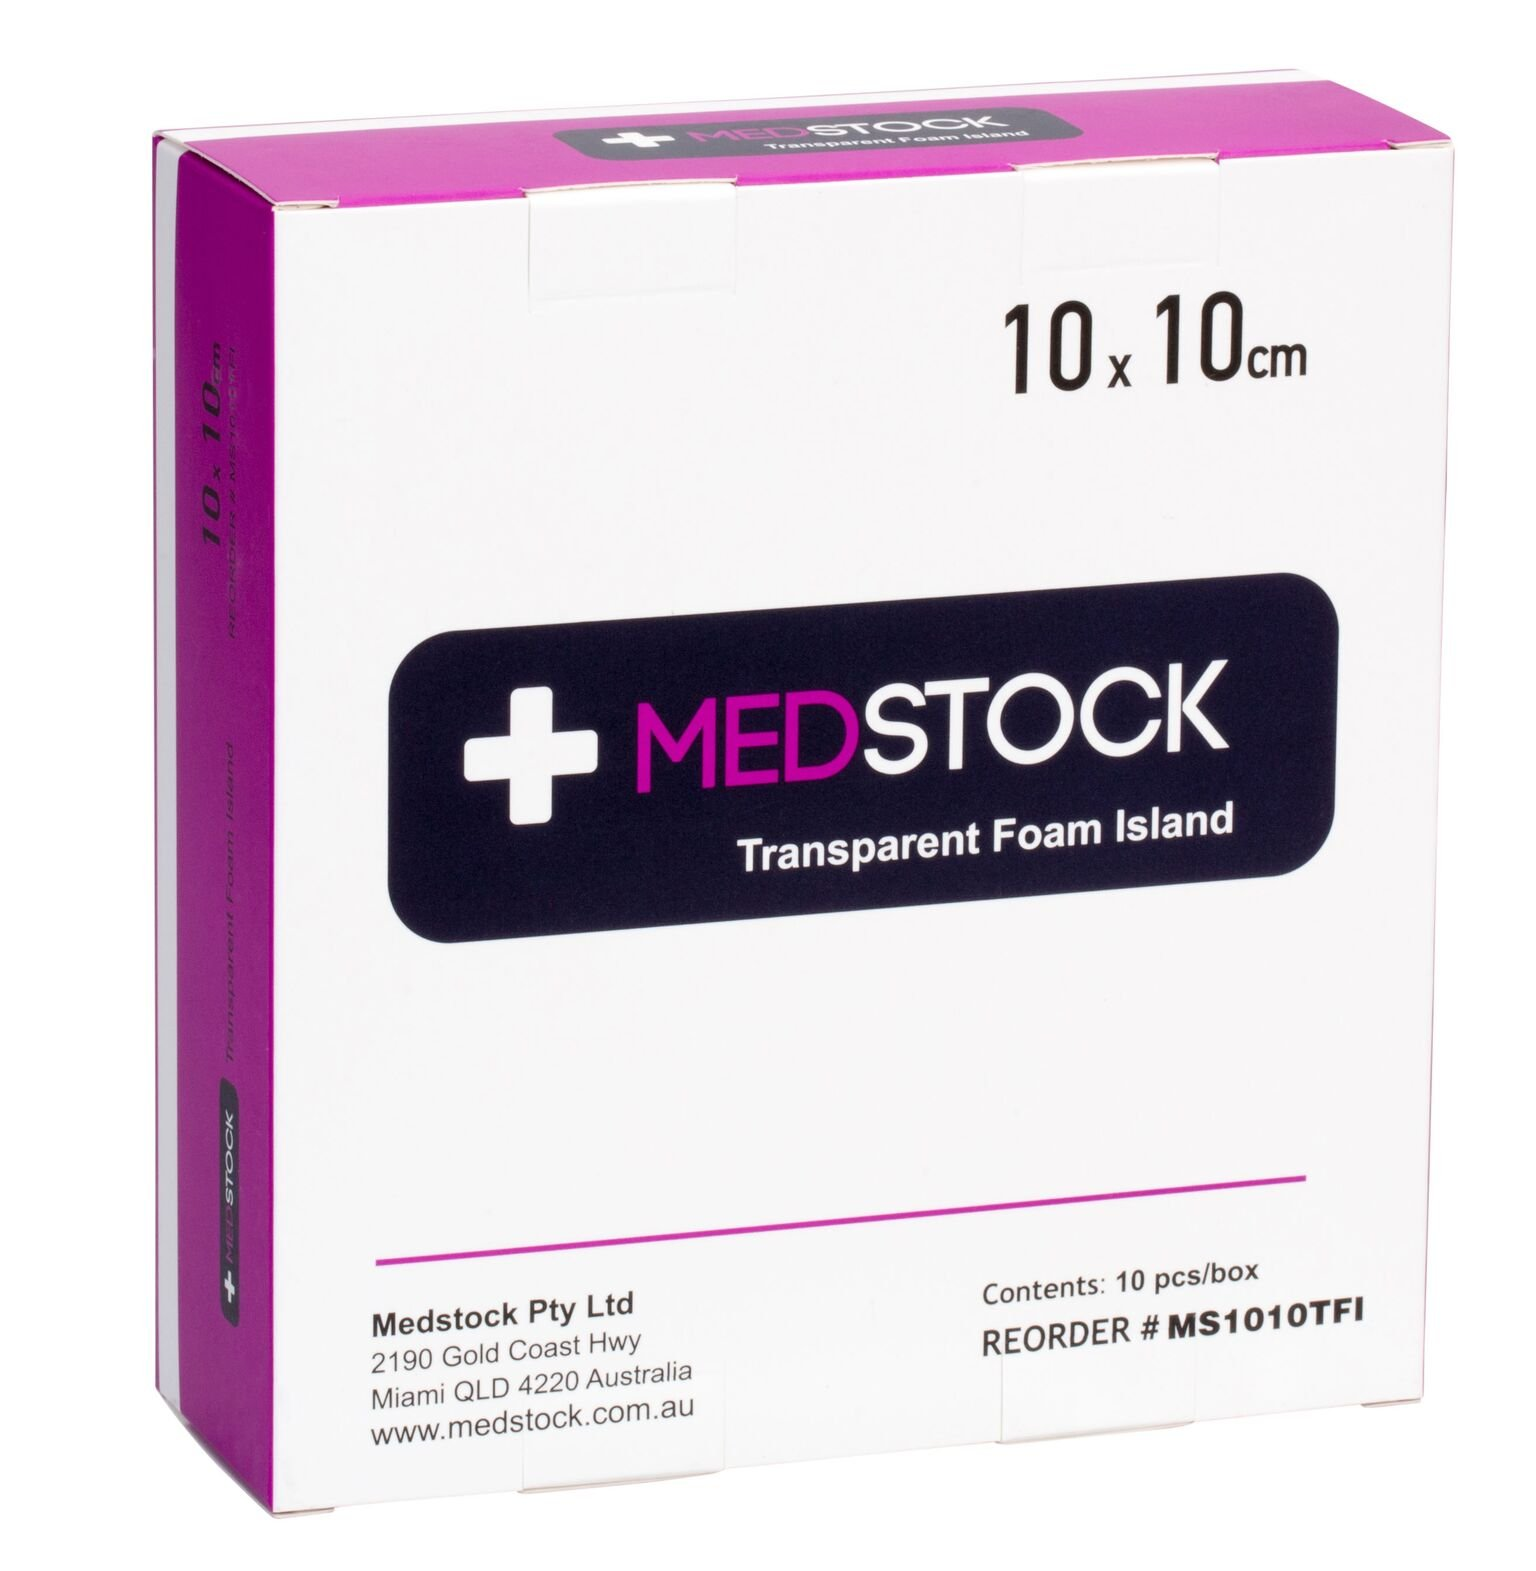 MEDSTOCK TRANSPARENT FOAM ISLAND DRESSING 10CM X 10CM, BOX 10